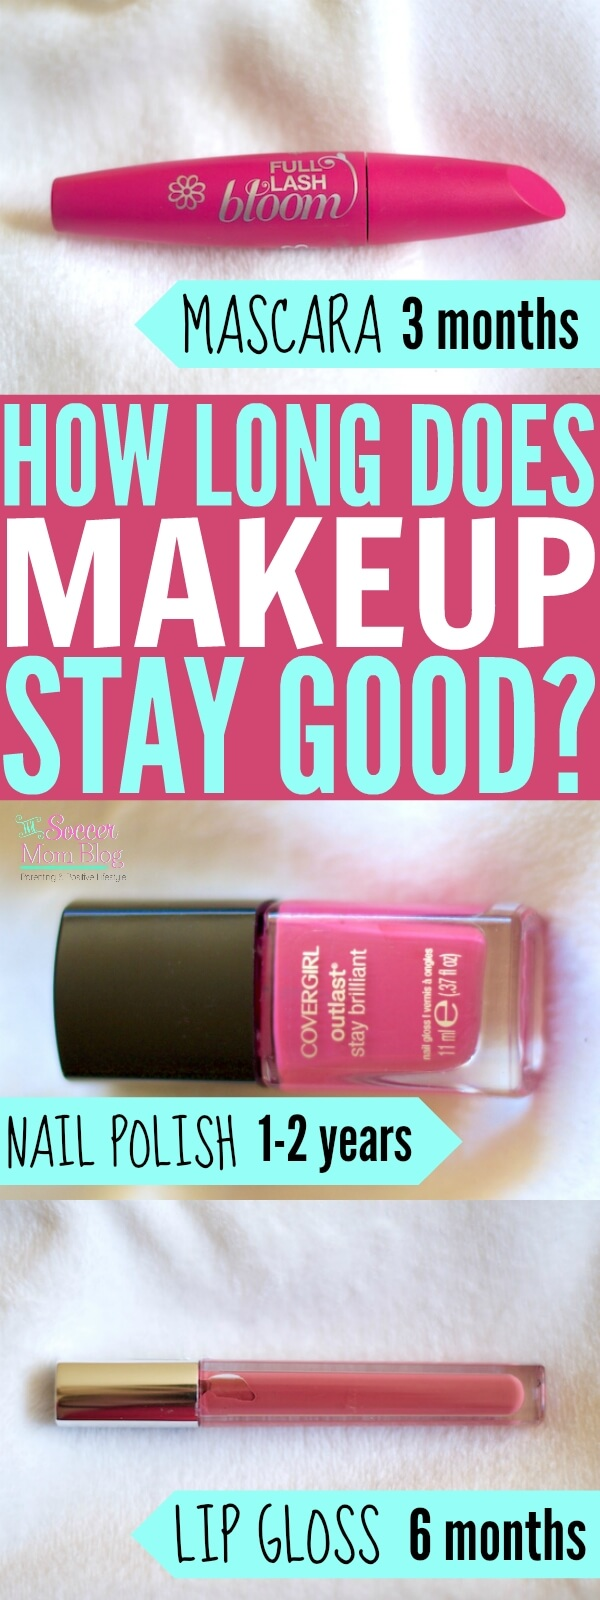 How long does makeup last? Plus tips for keeping your cosmetics & beauty products fresh longer!